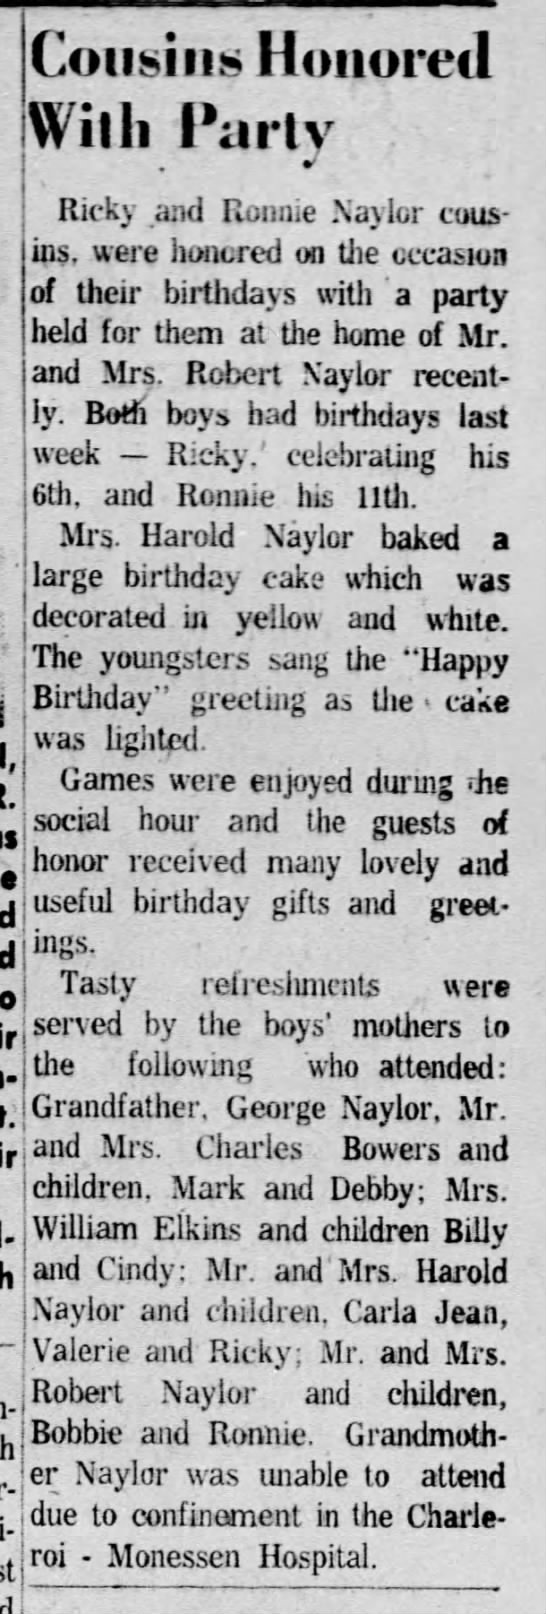 Cousins Honored With Party 20 Oct 1959 -